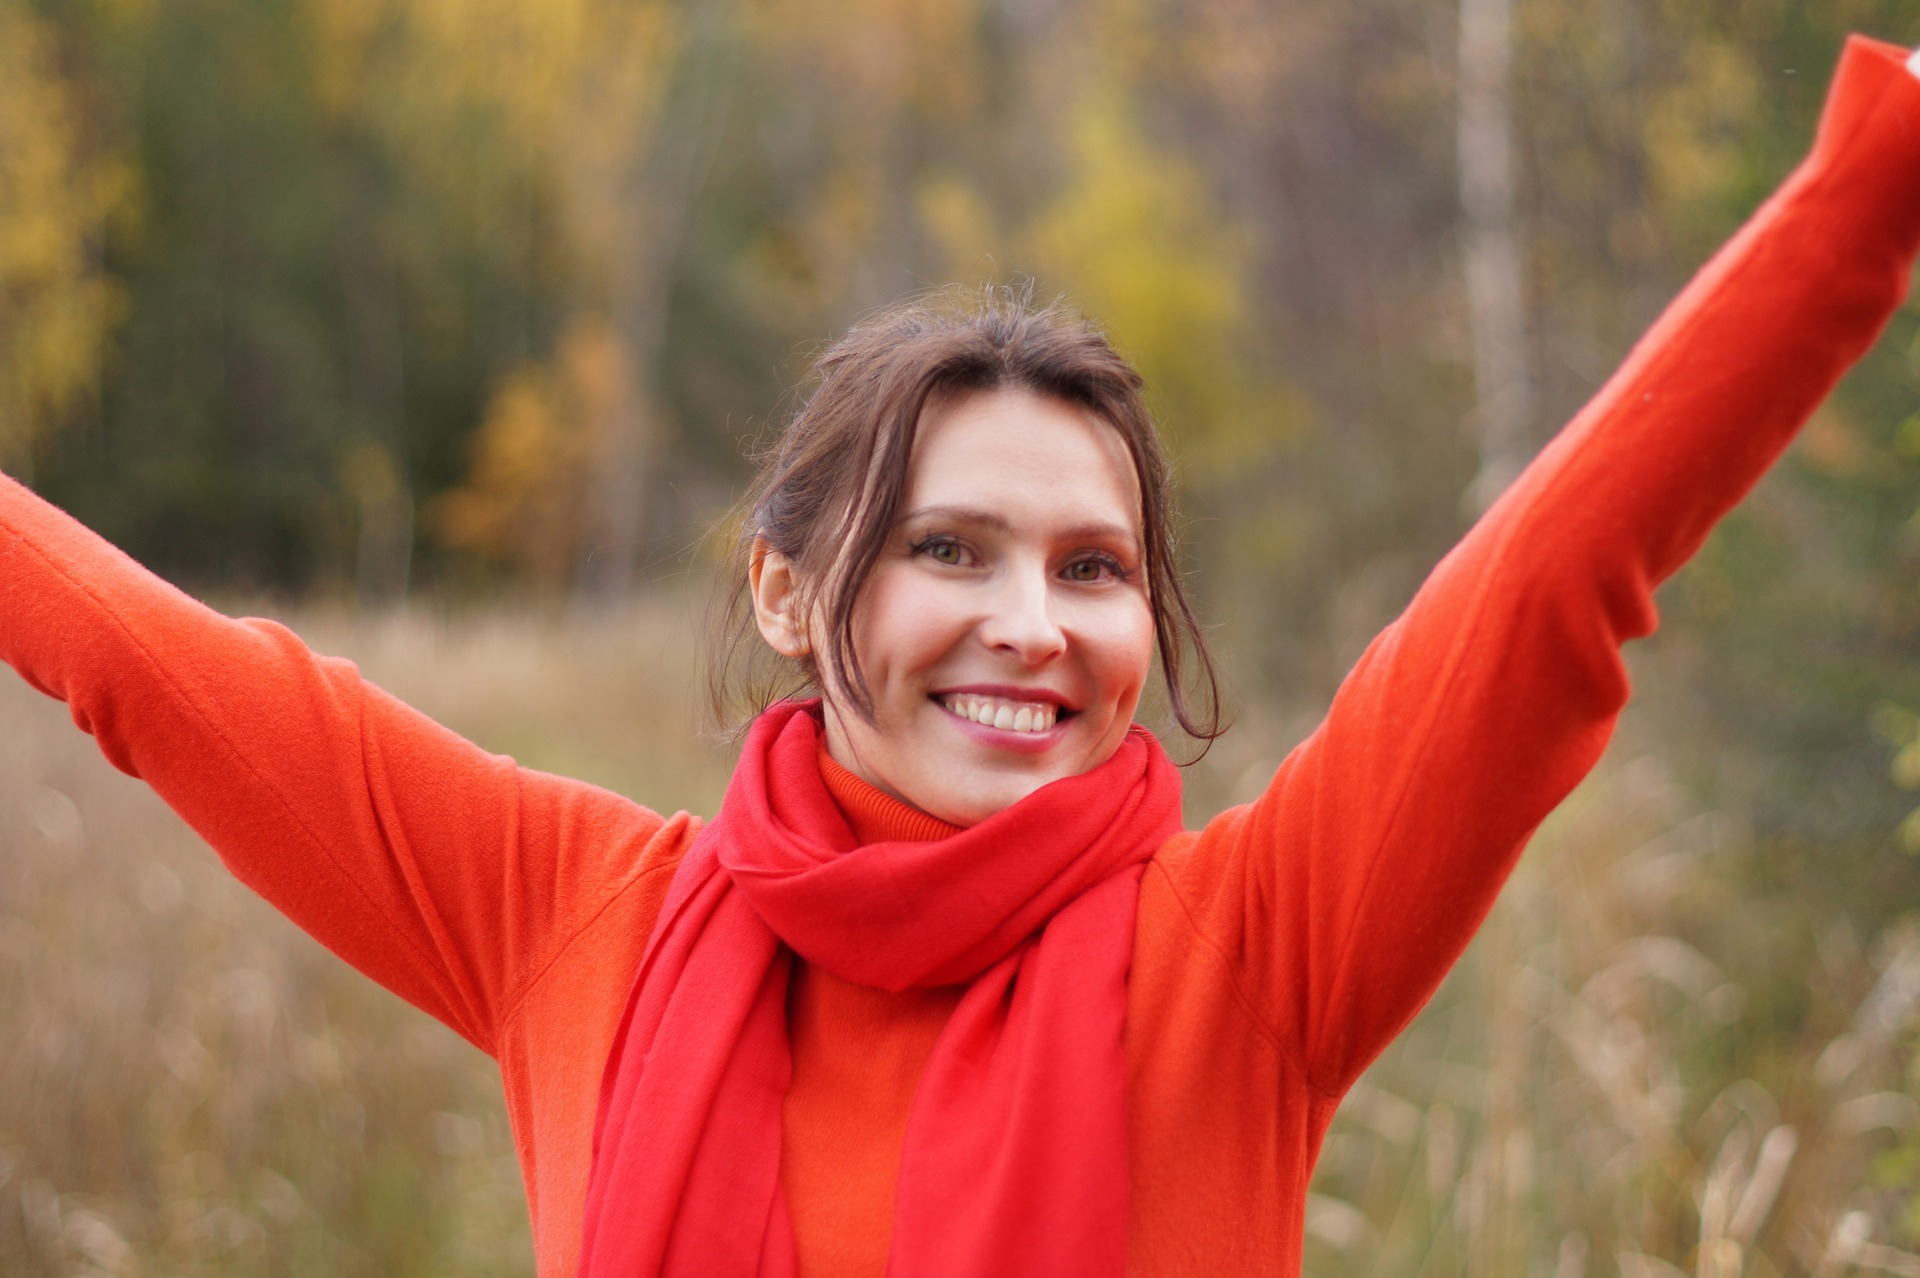 woman smiling how to prevent enamel loss